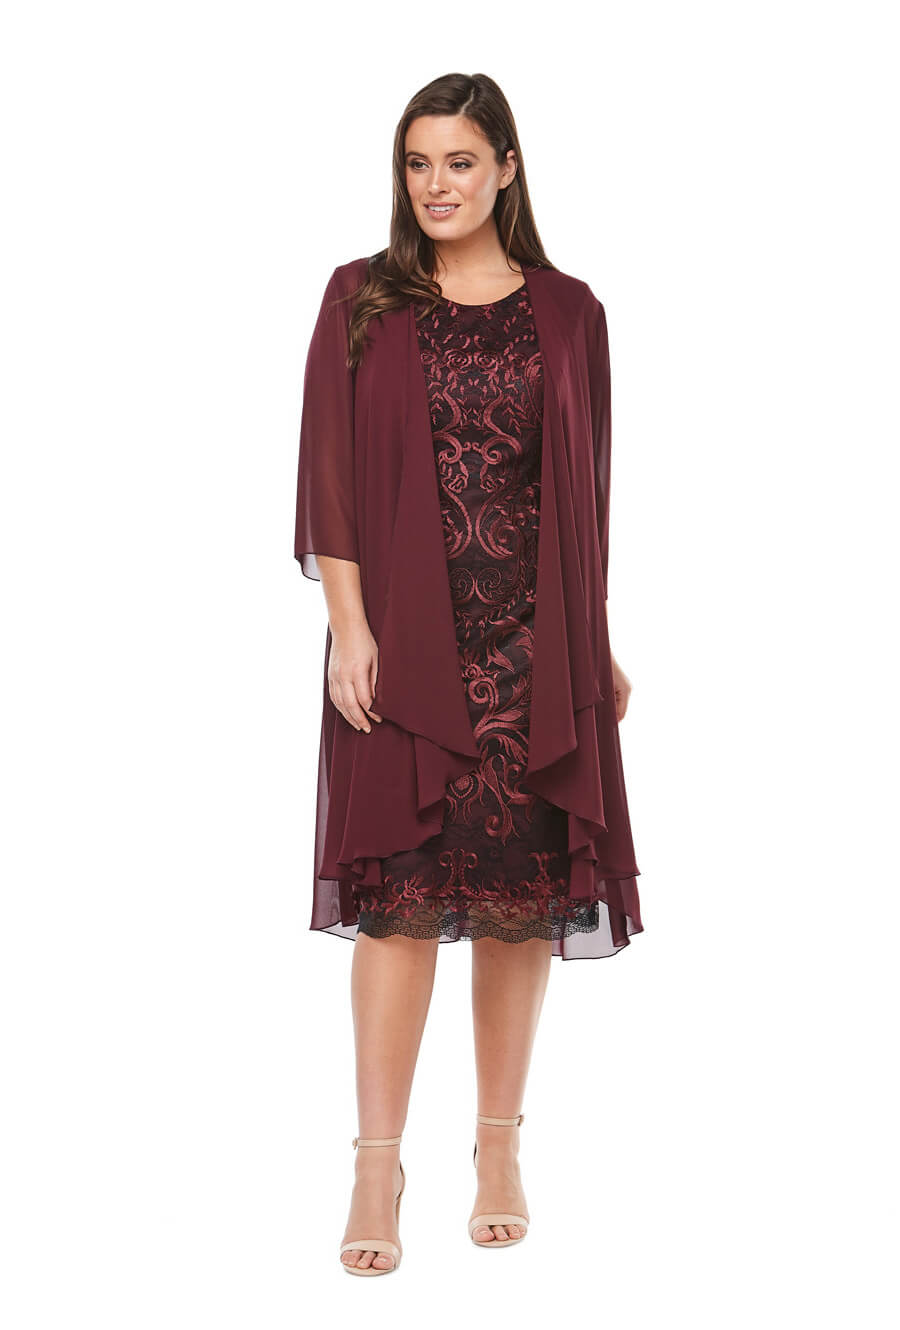 embroidered cocktaildress with 3/4 length waterfall chiffon jacket